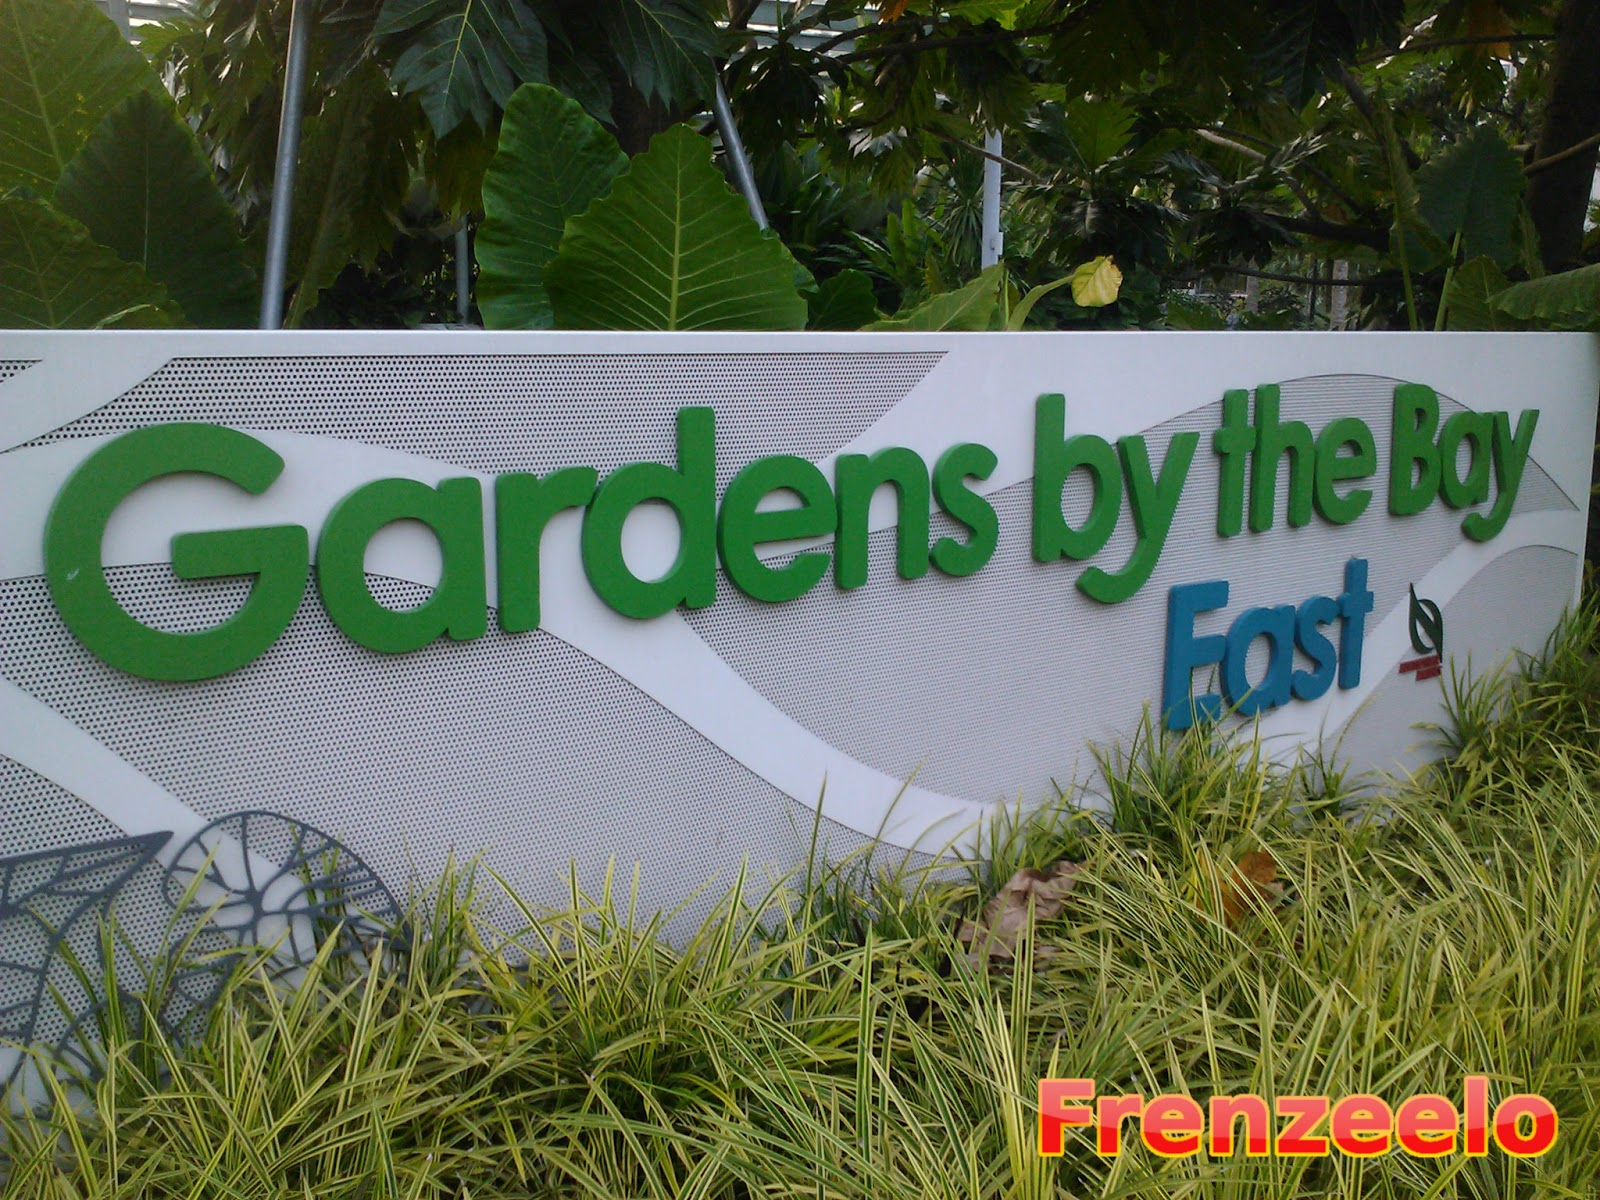 garden by the bay east firework gardensthe bay east map deviprasadregmi